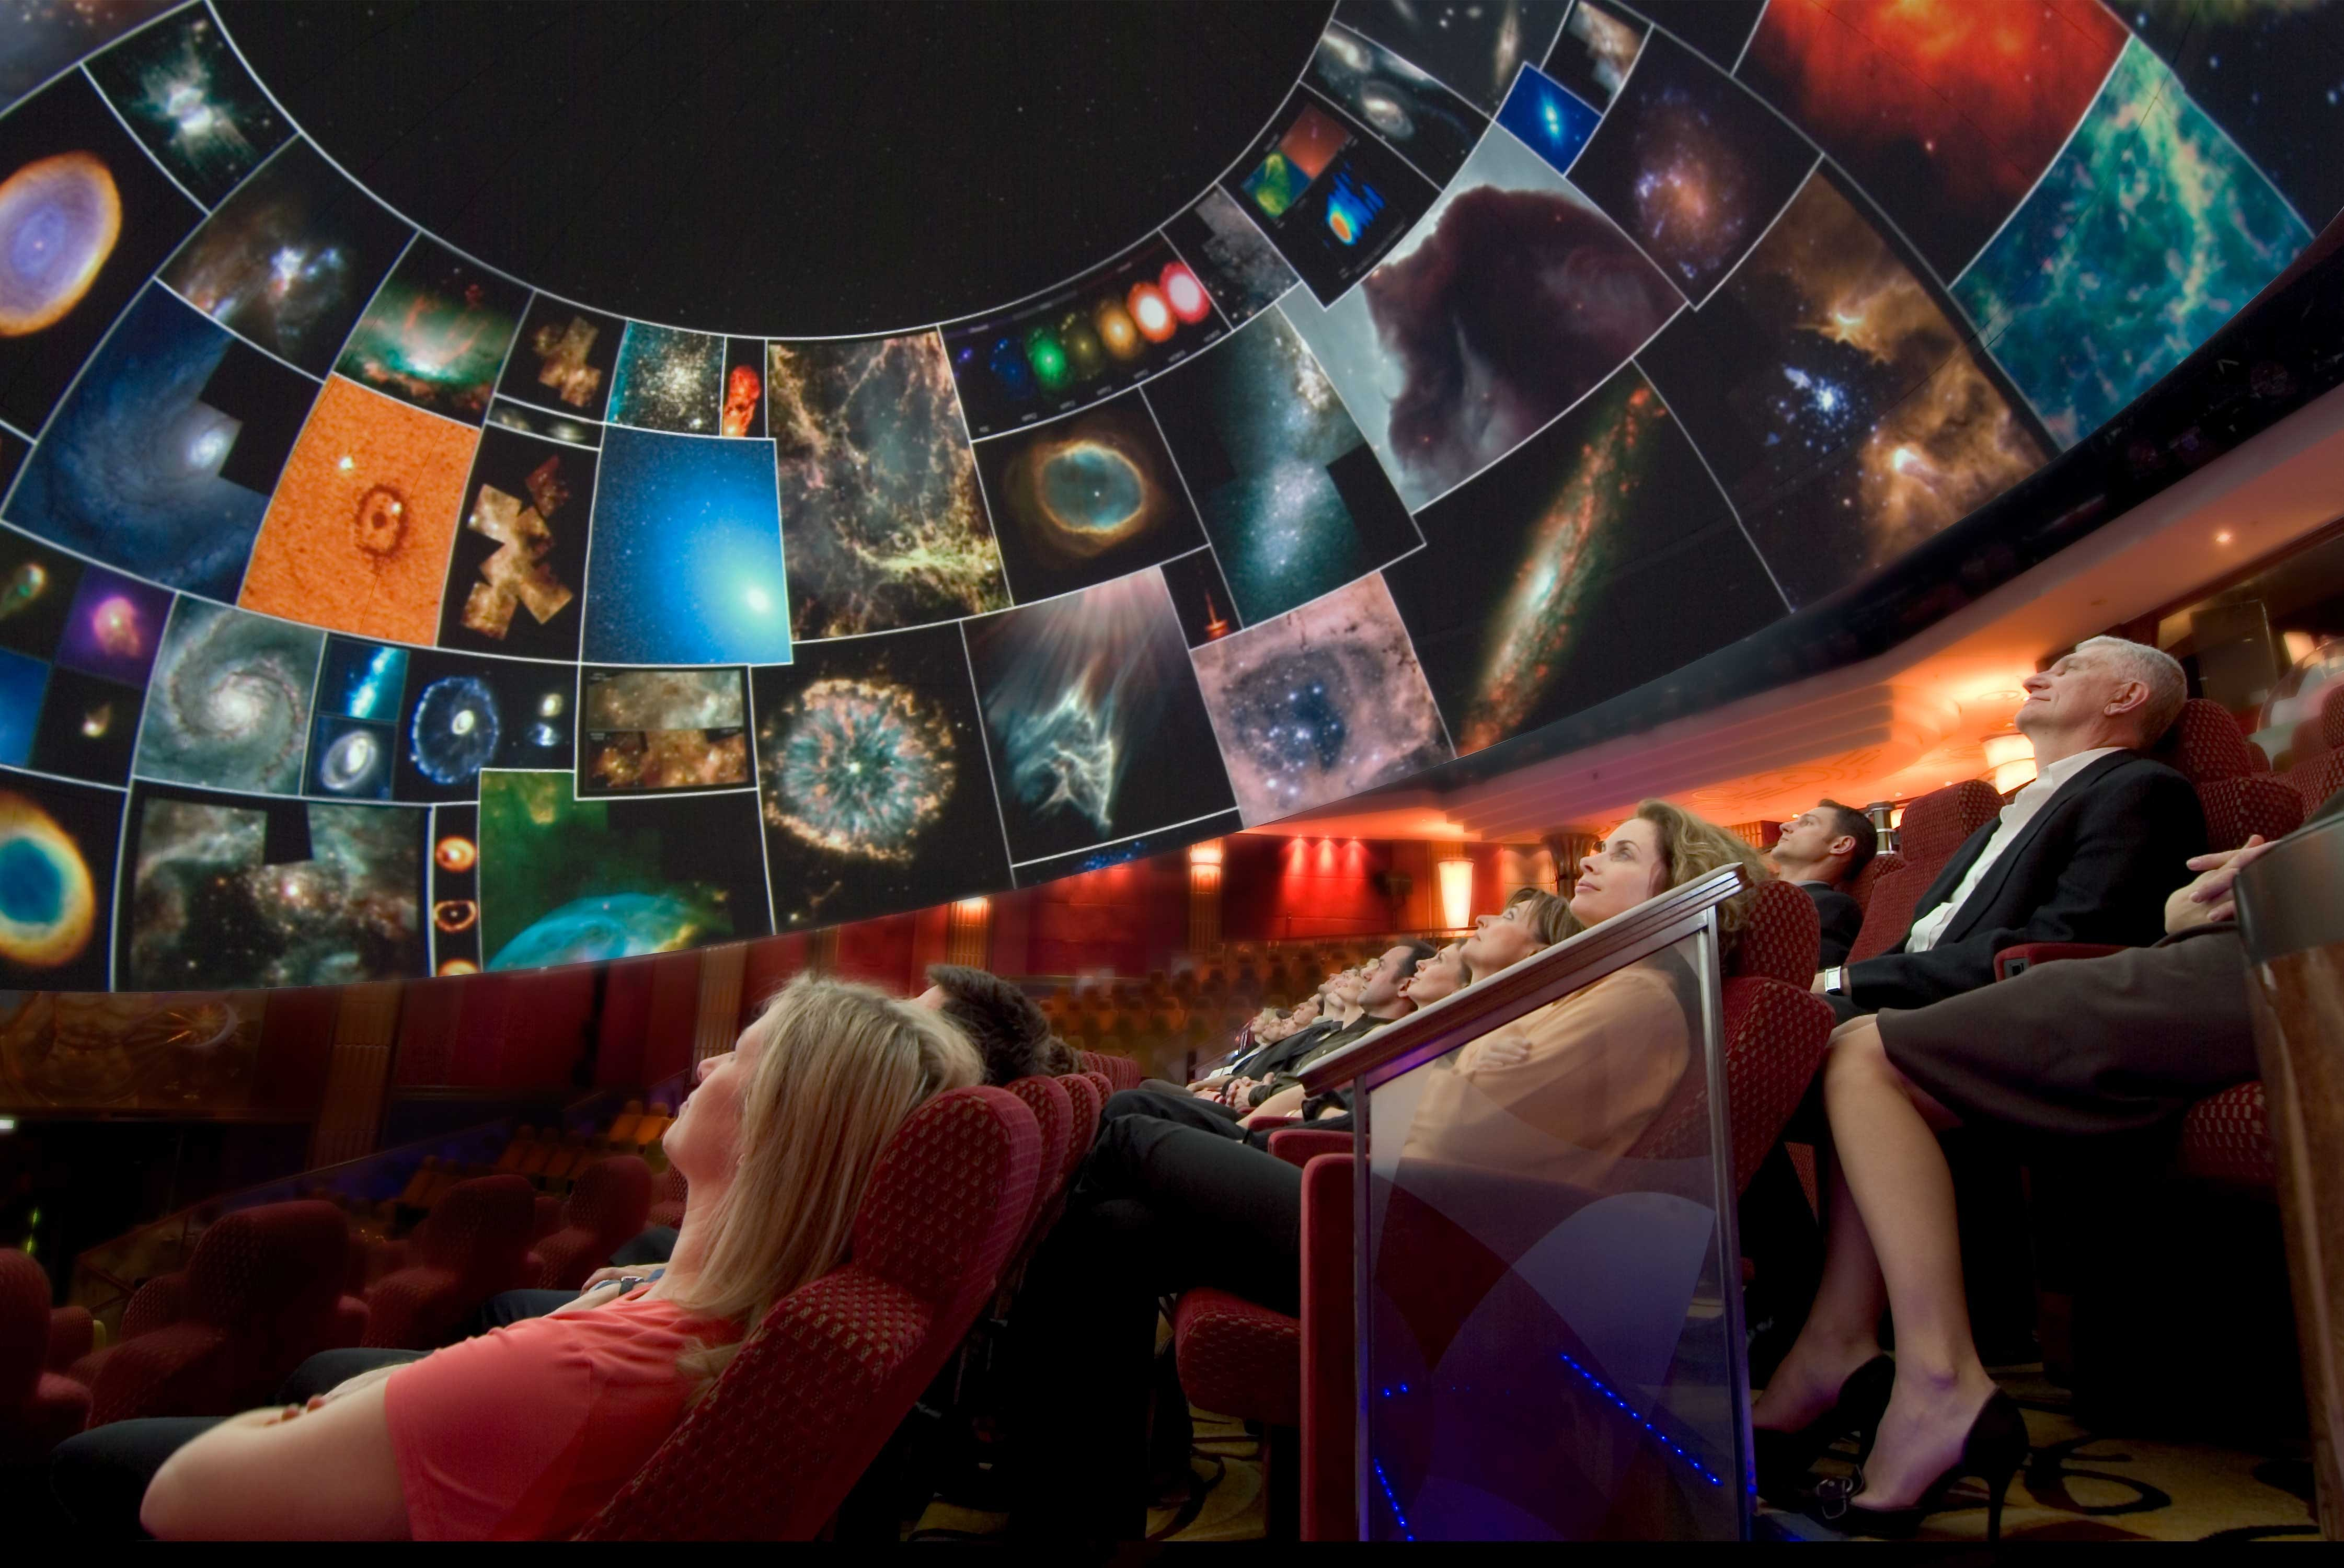 Younger travelers will appreciate the planetarium onboard the Queen Mary 2.